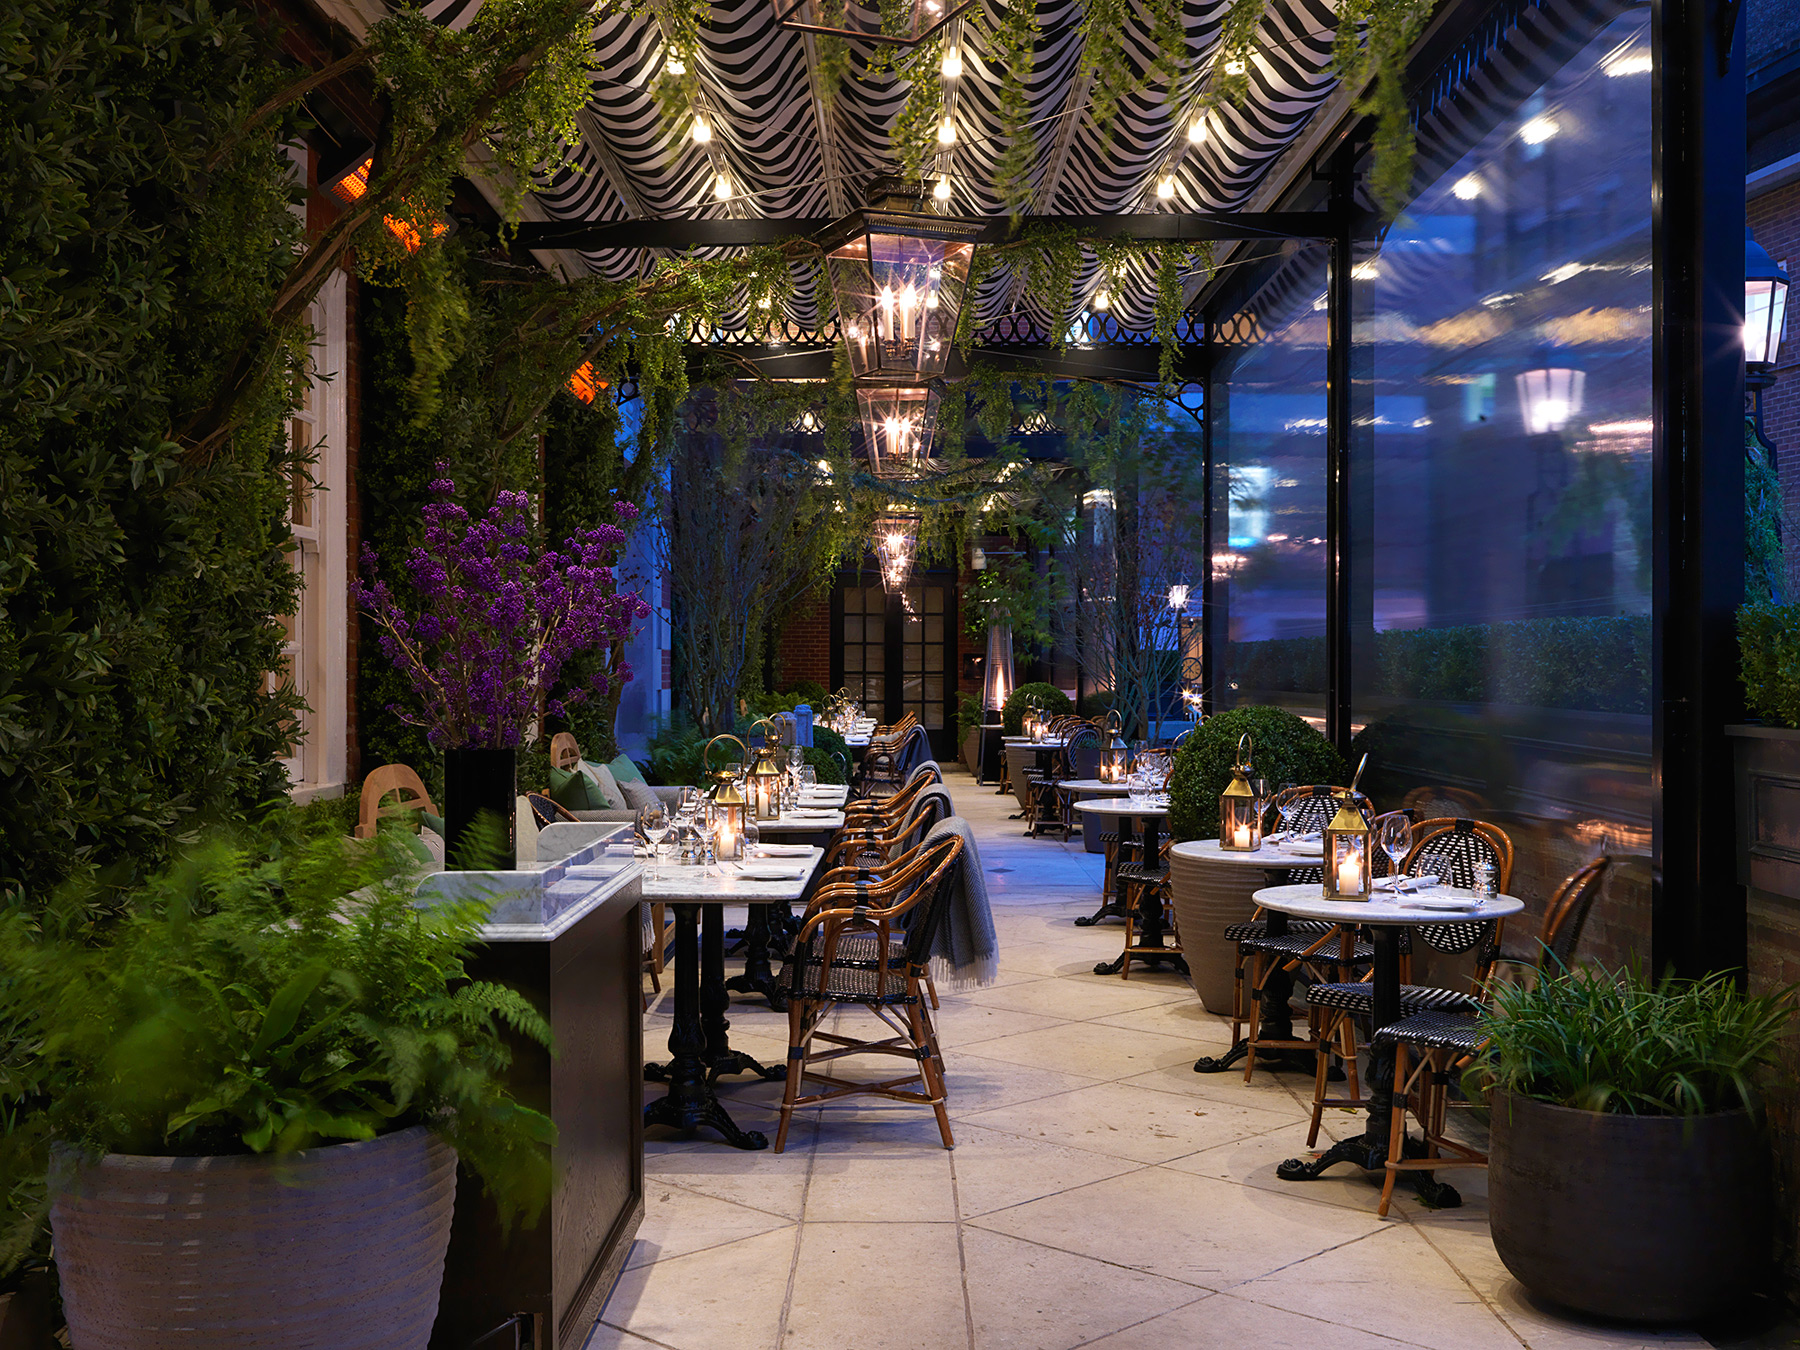 Dalloway terrace at the bloomsbury london for The terrace bar and food